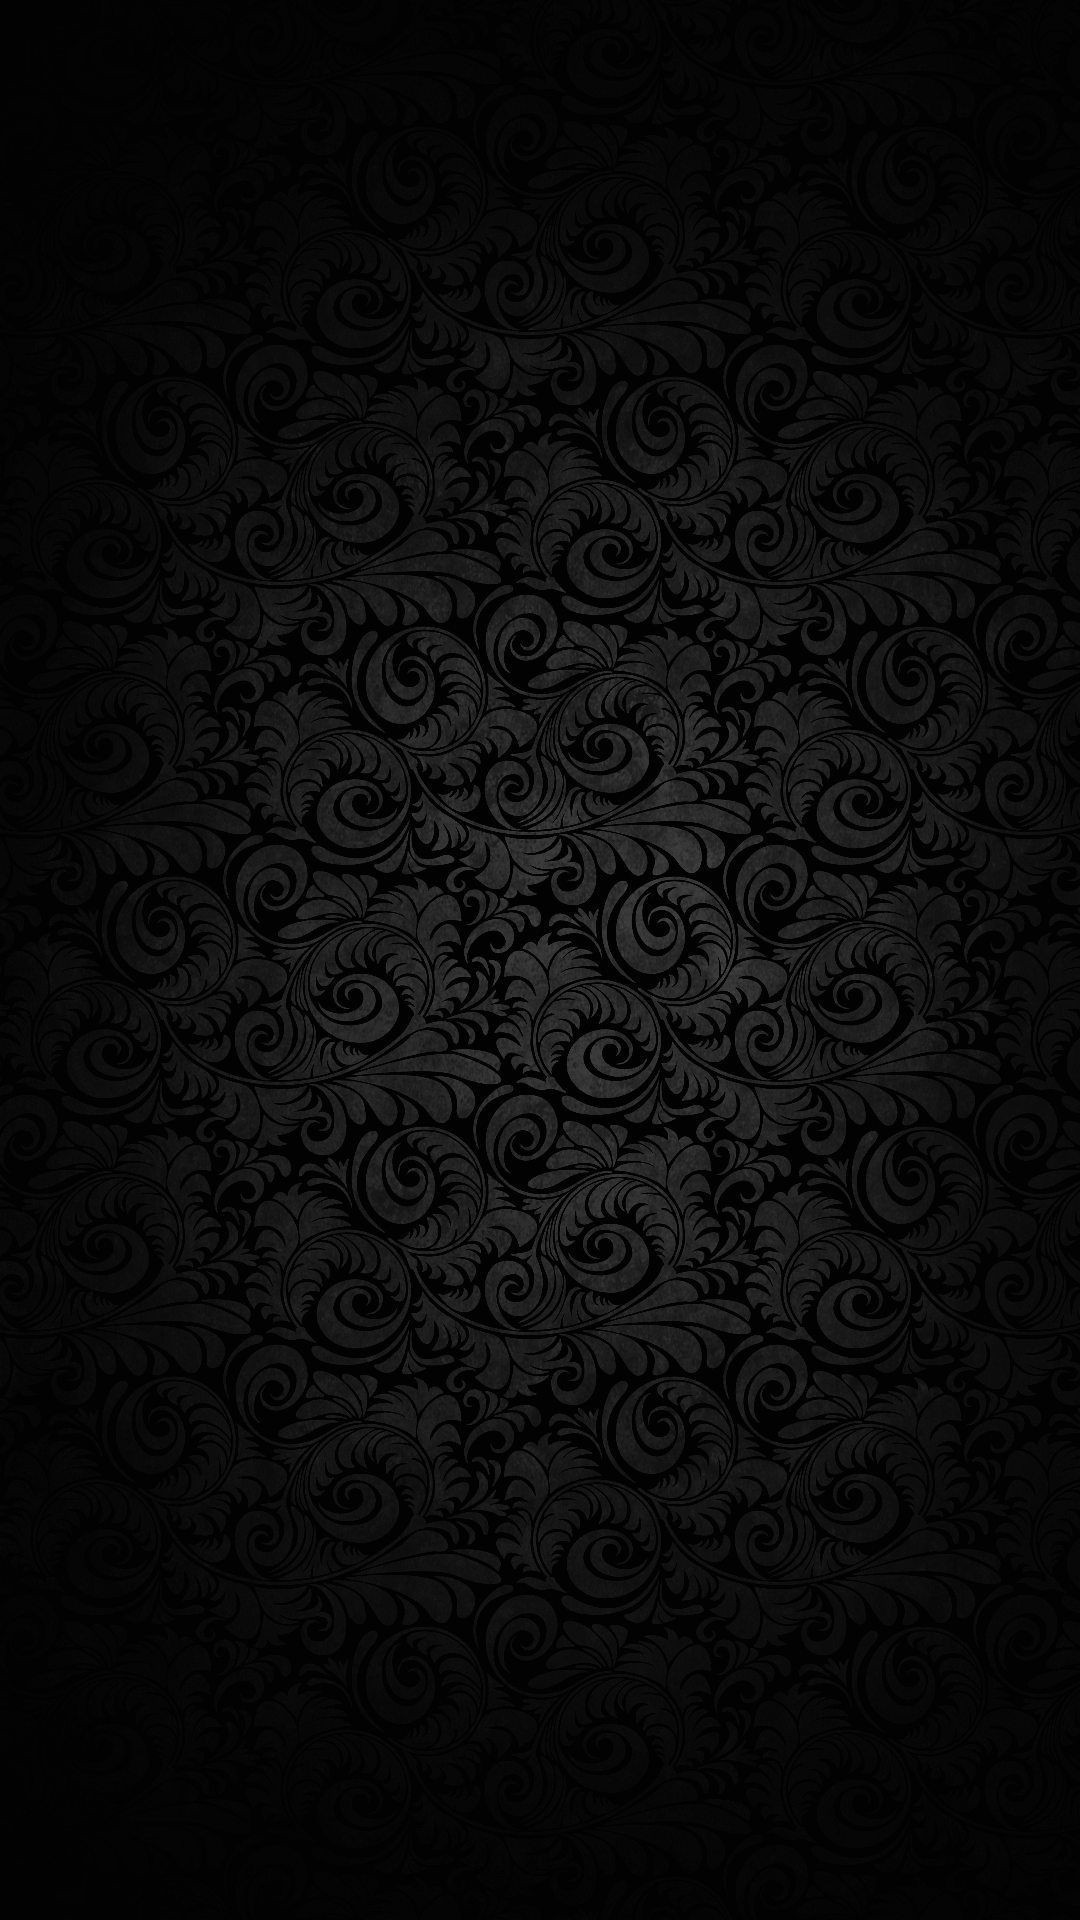 Dark wallpaper for android